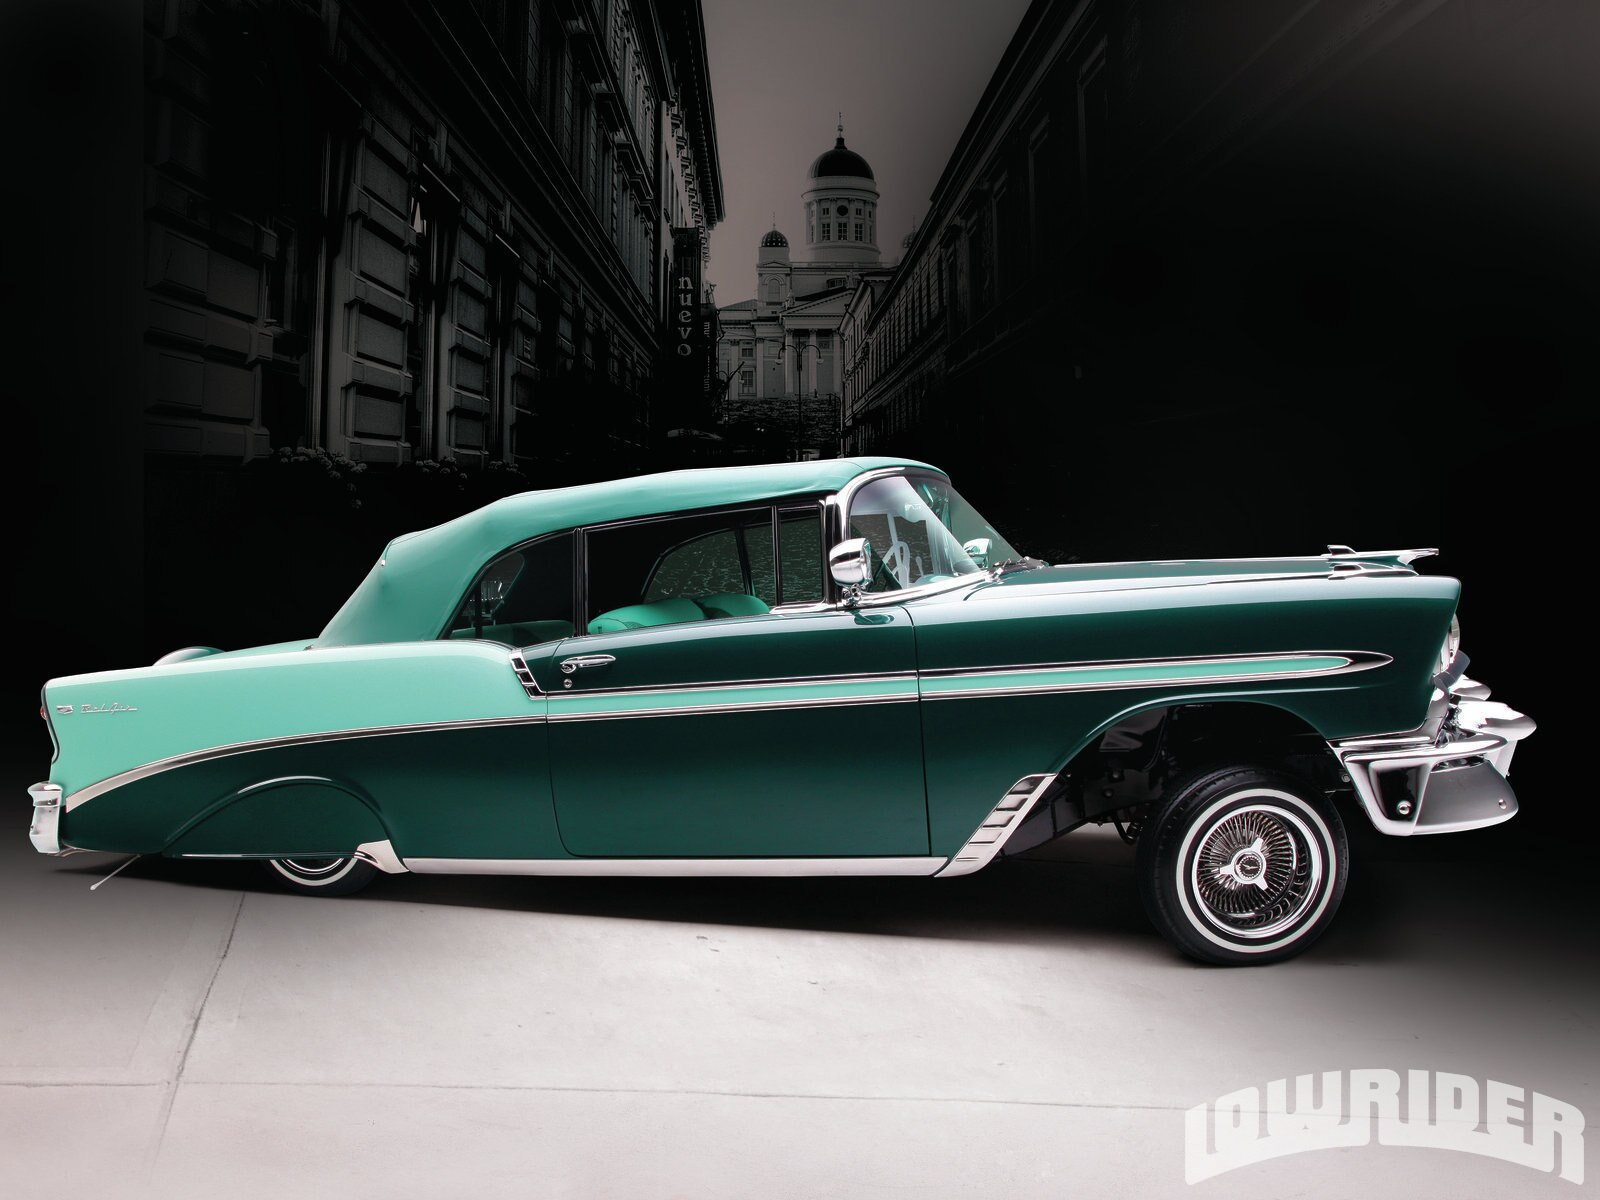 1956 Chevy Bel Air Convertible - Lowrider Magazine